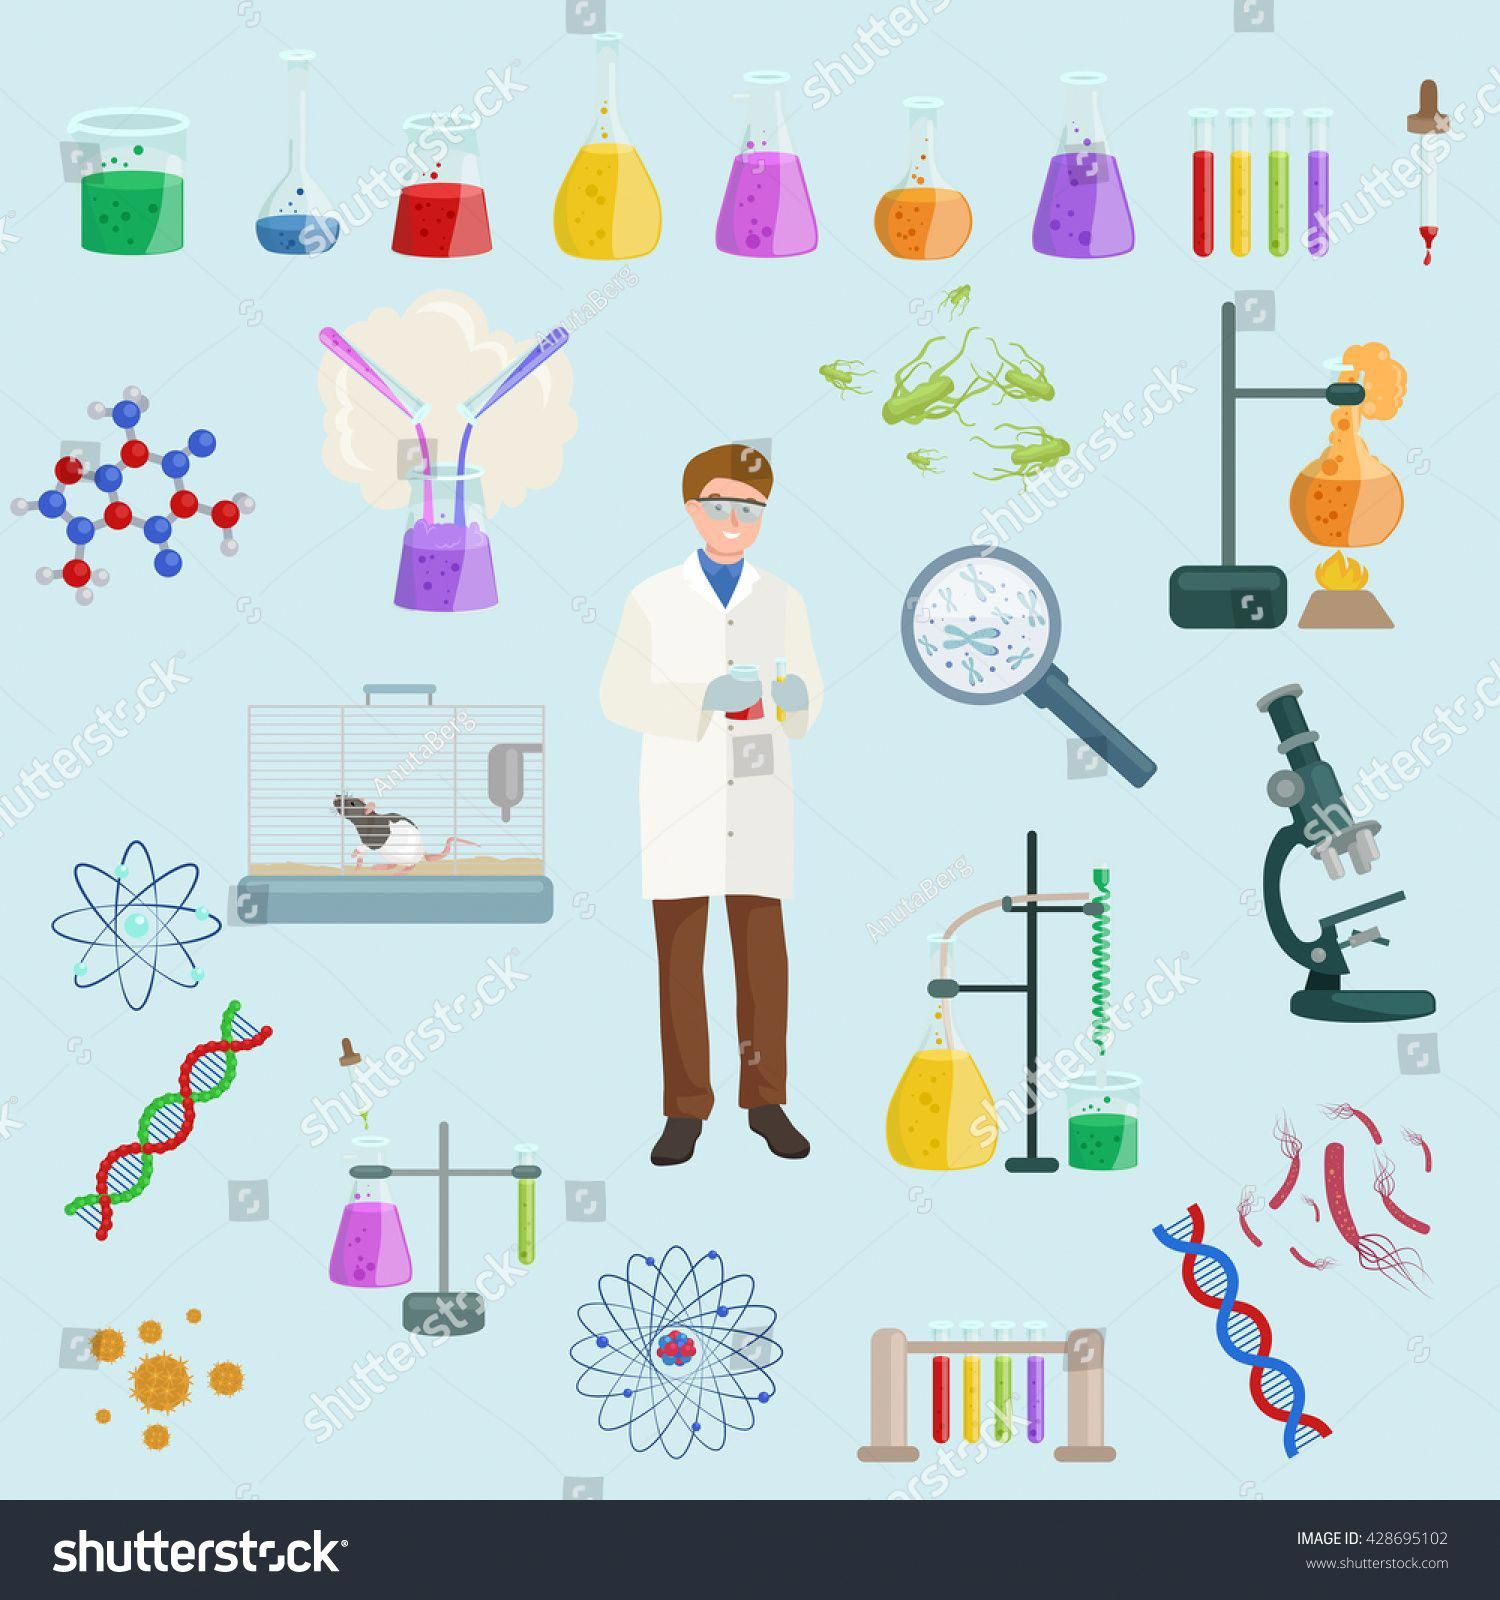 icon vector set science lab,reaction tools,chemistry